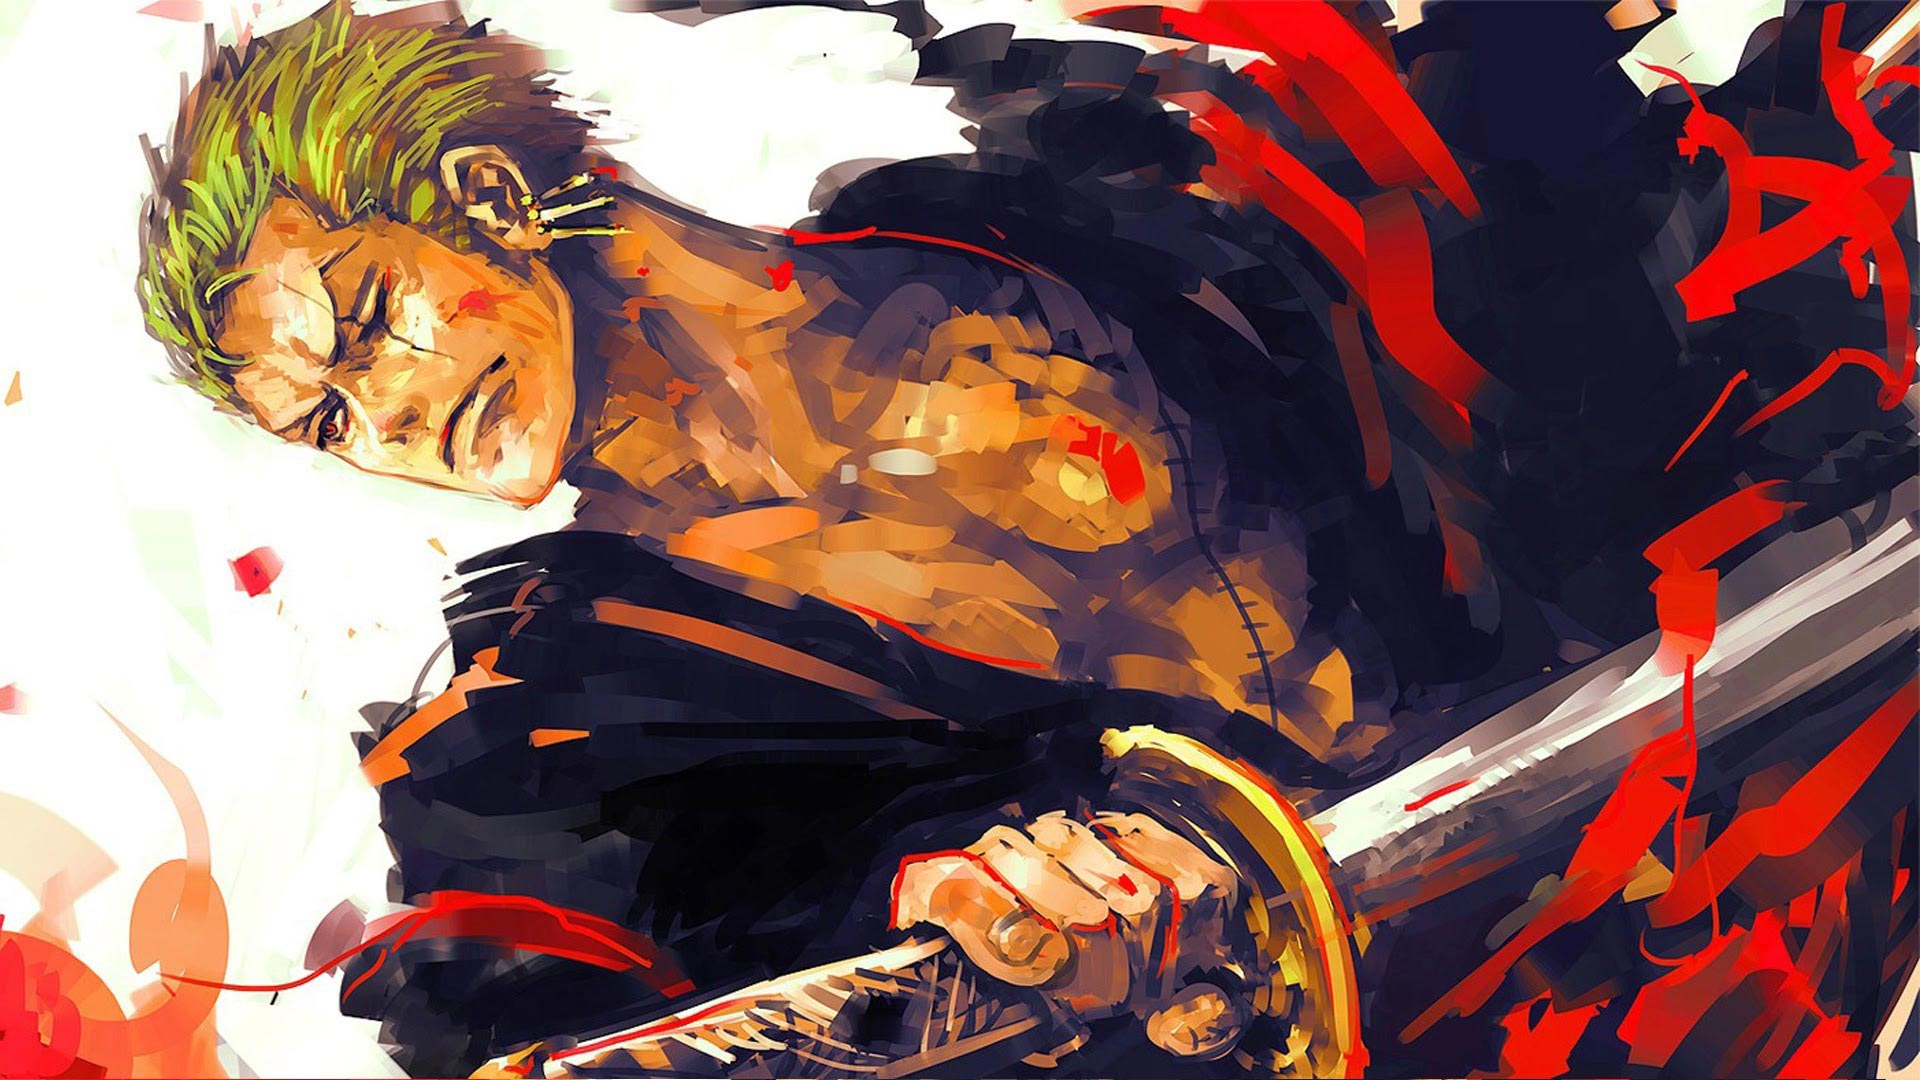 Zoro Wallpaper Hd 4k Gambarku